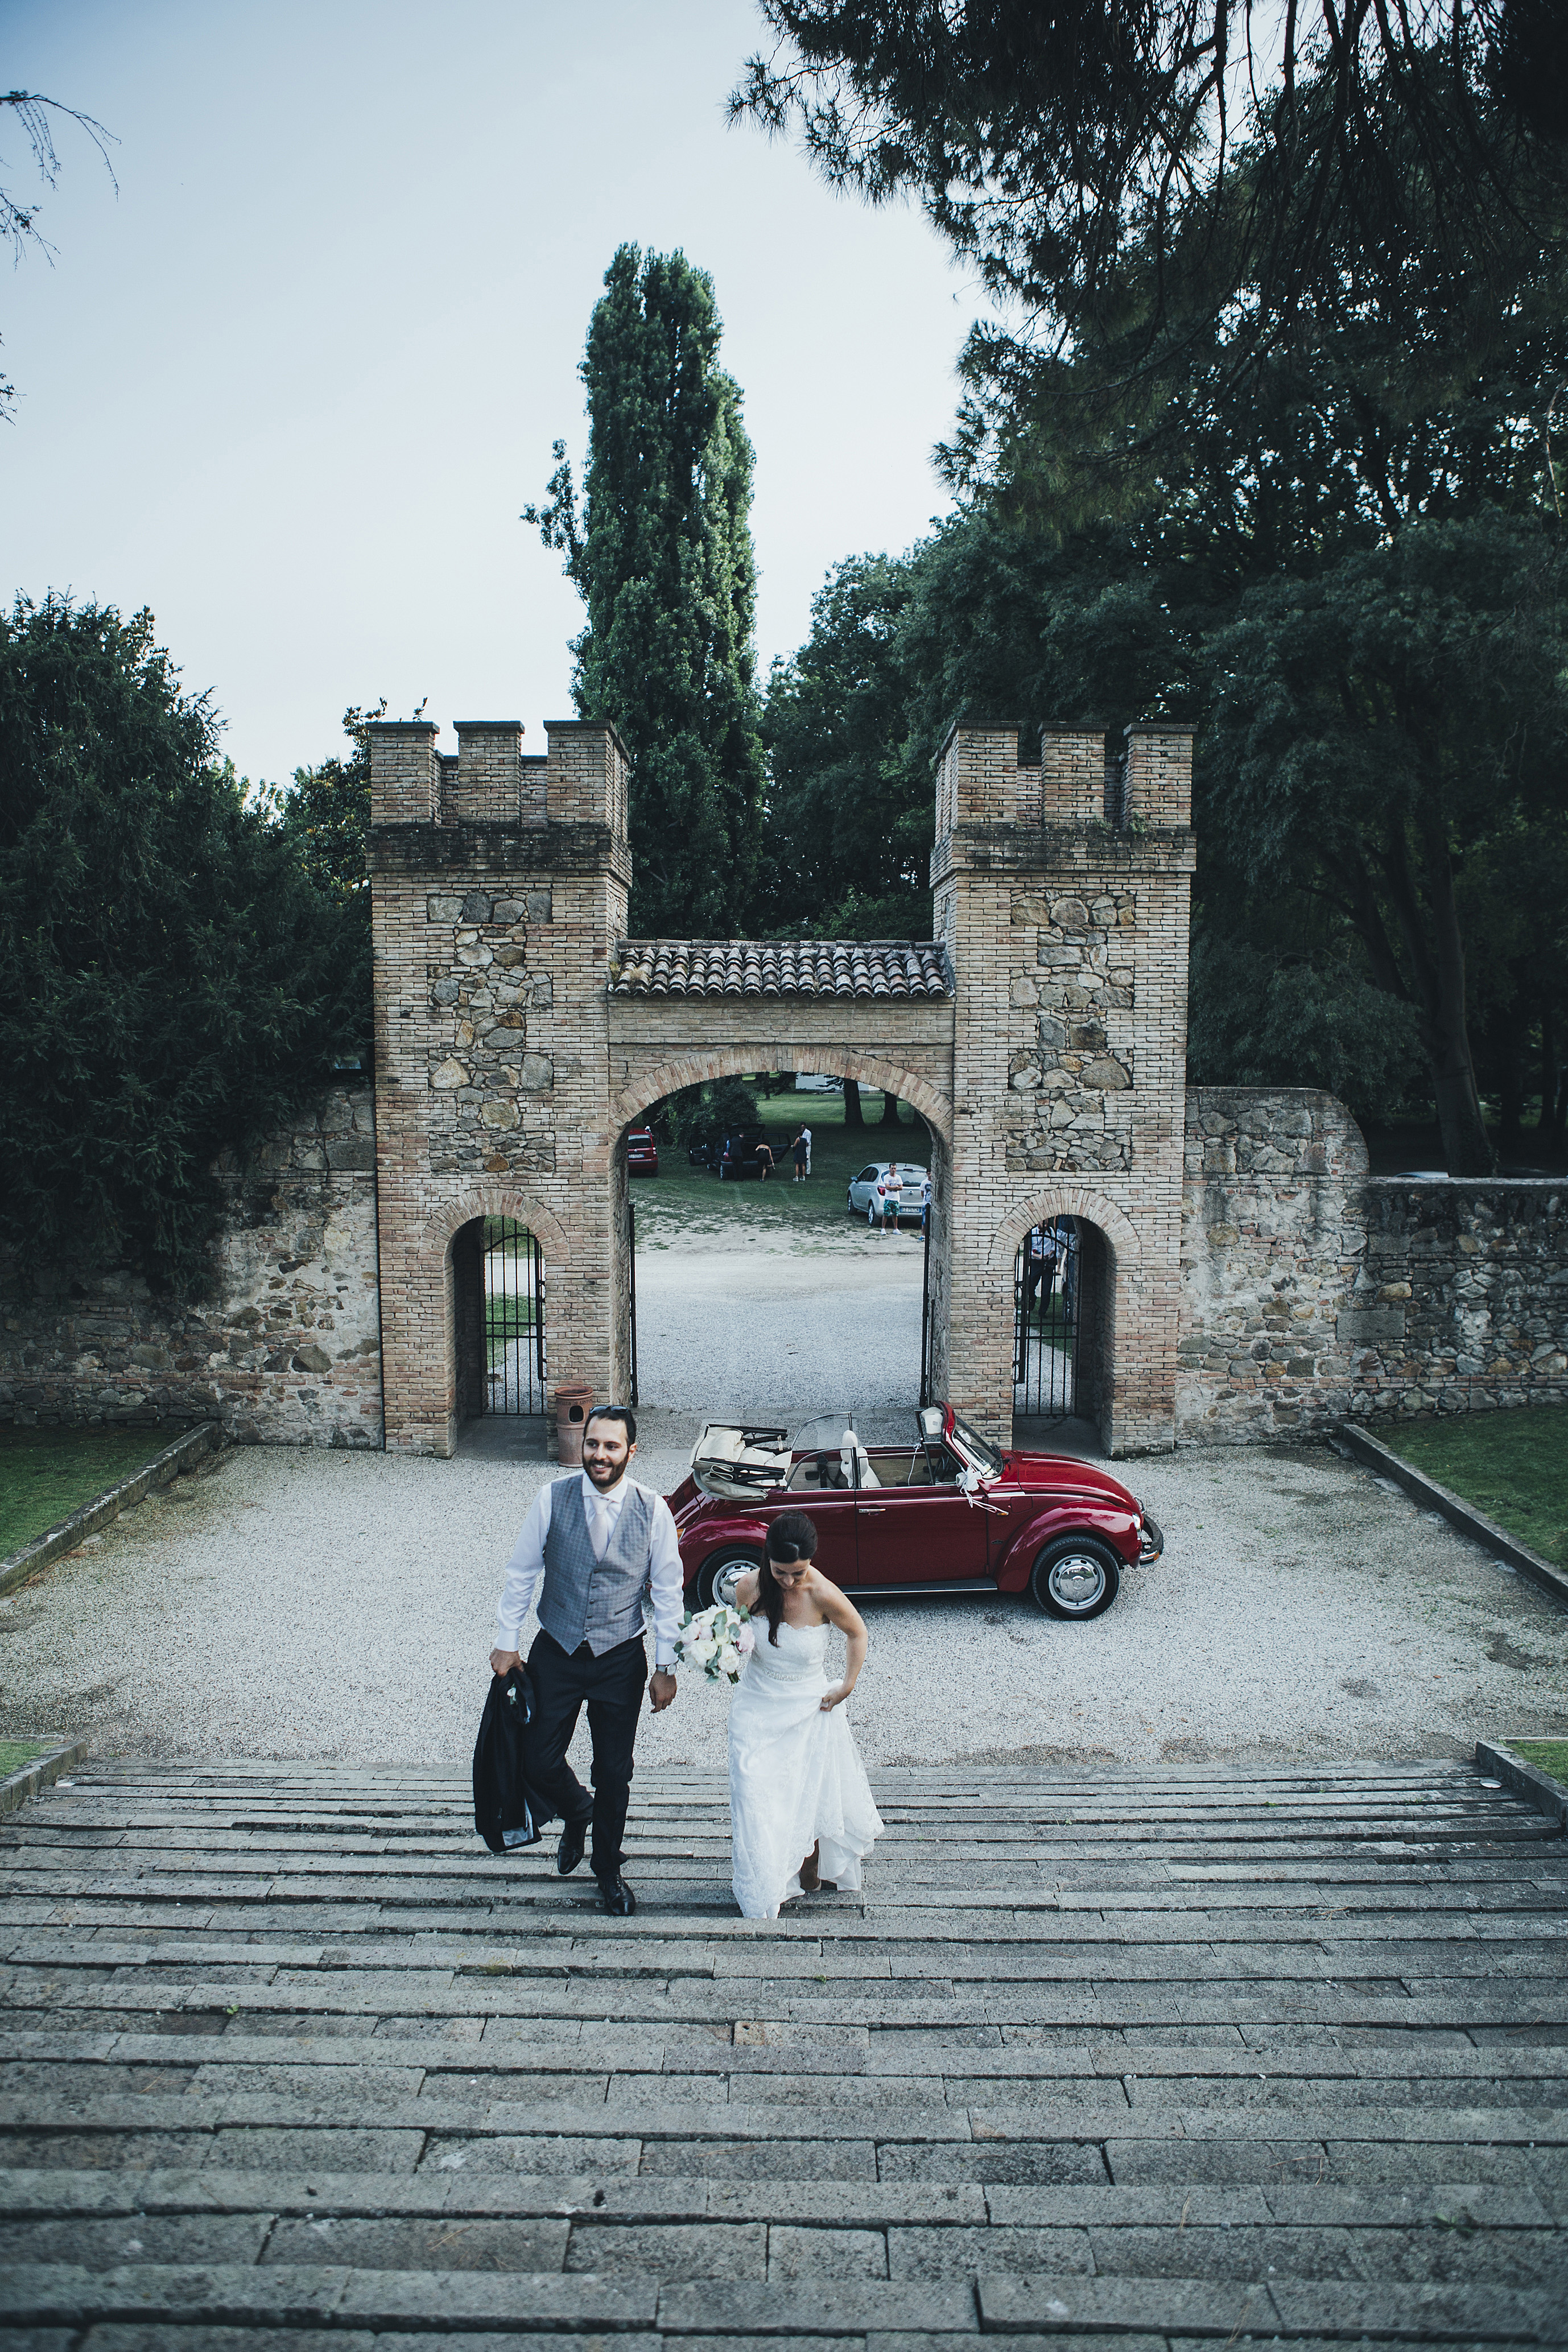 castello di lispida wedding in italy